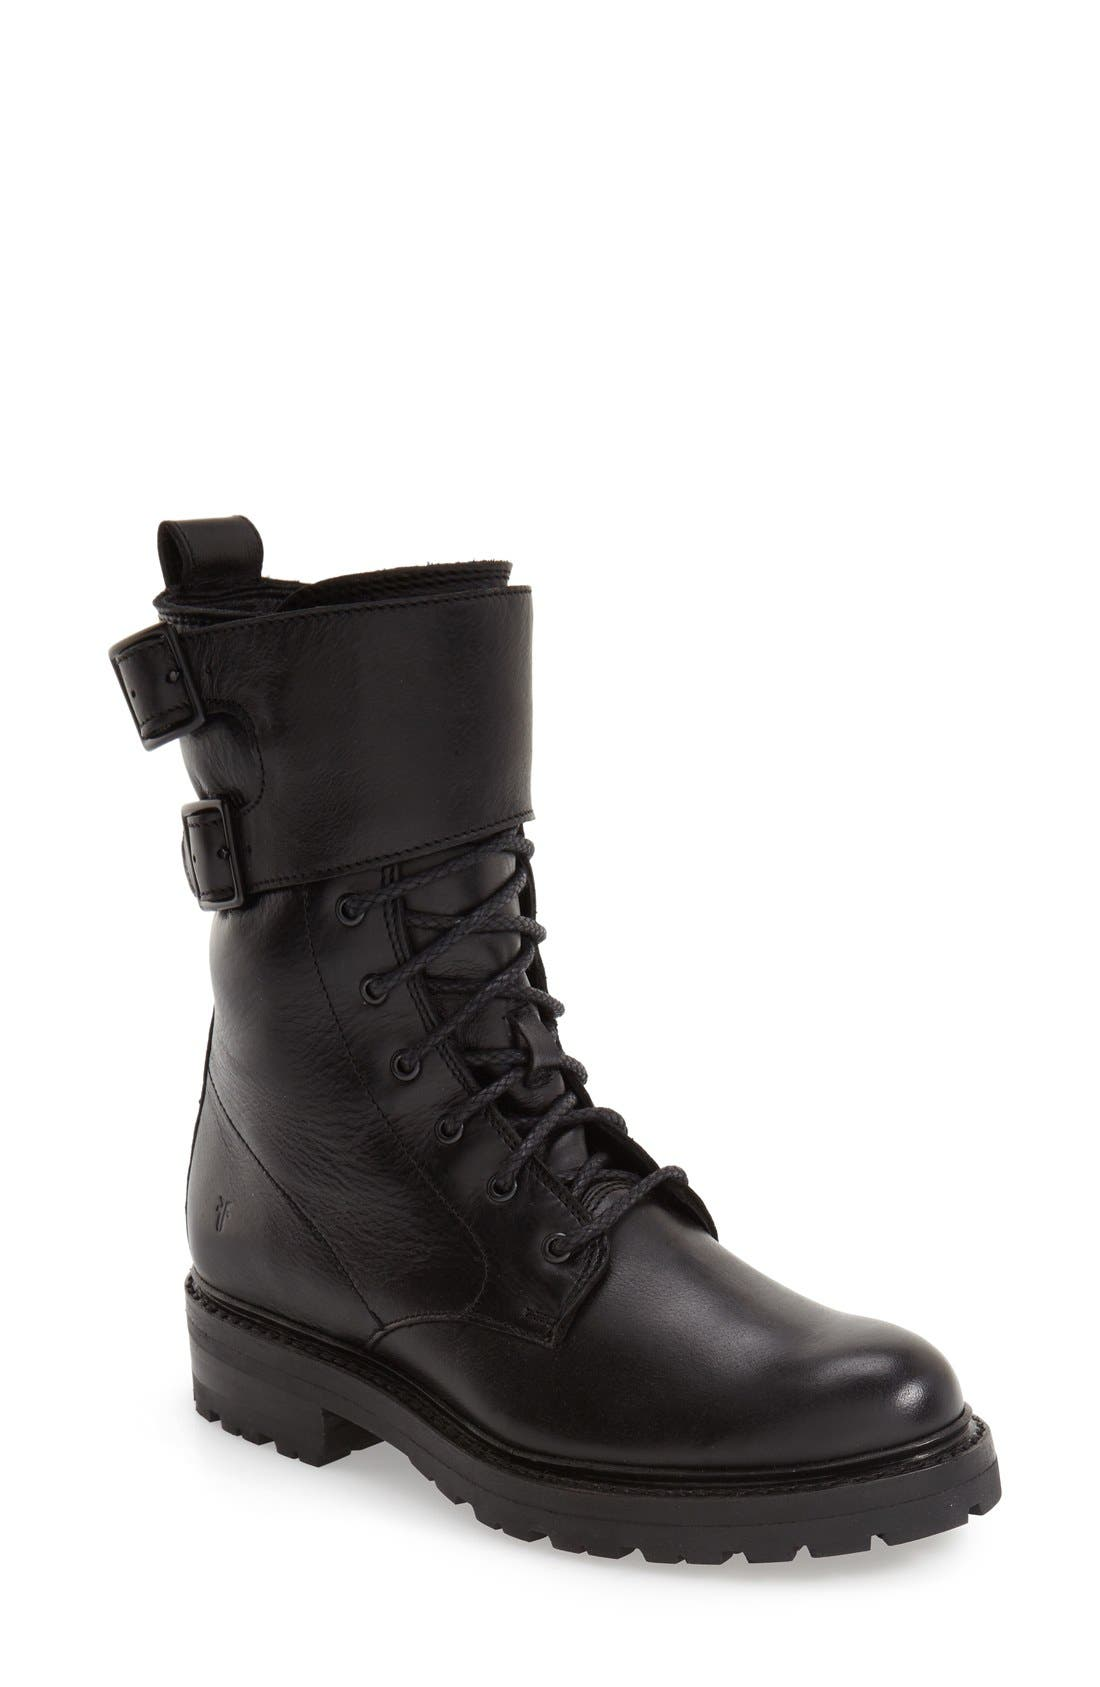 Main Image - Frye 'Julie' Shield Combat Boot (Women)